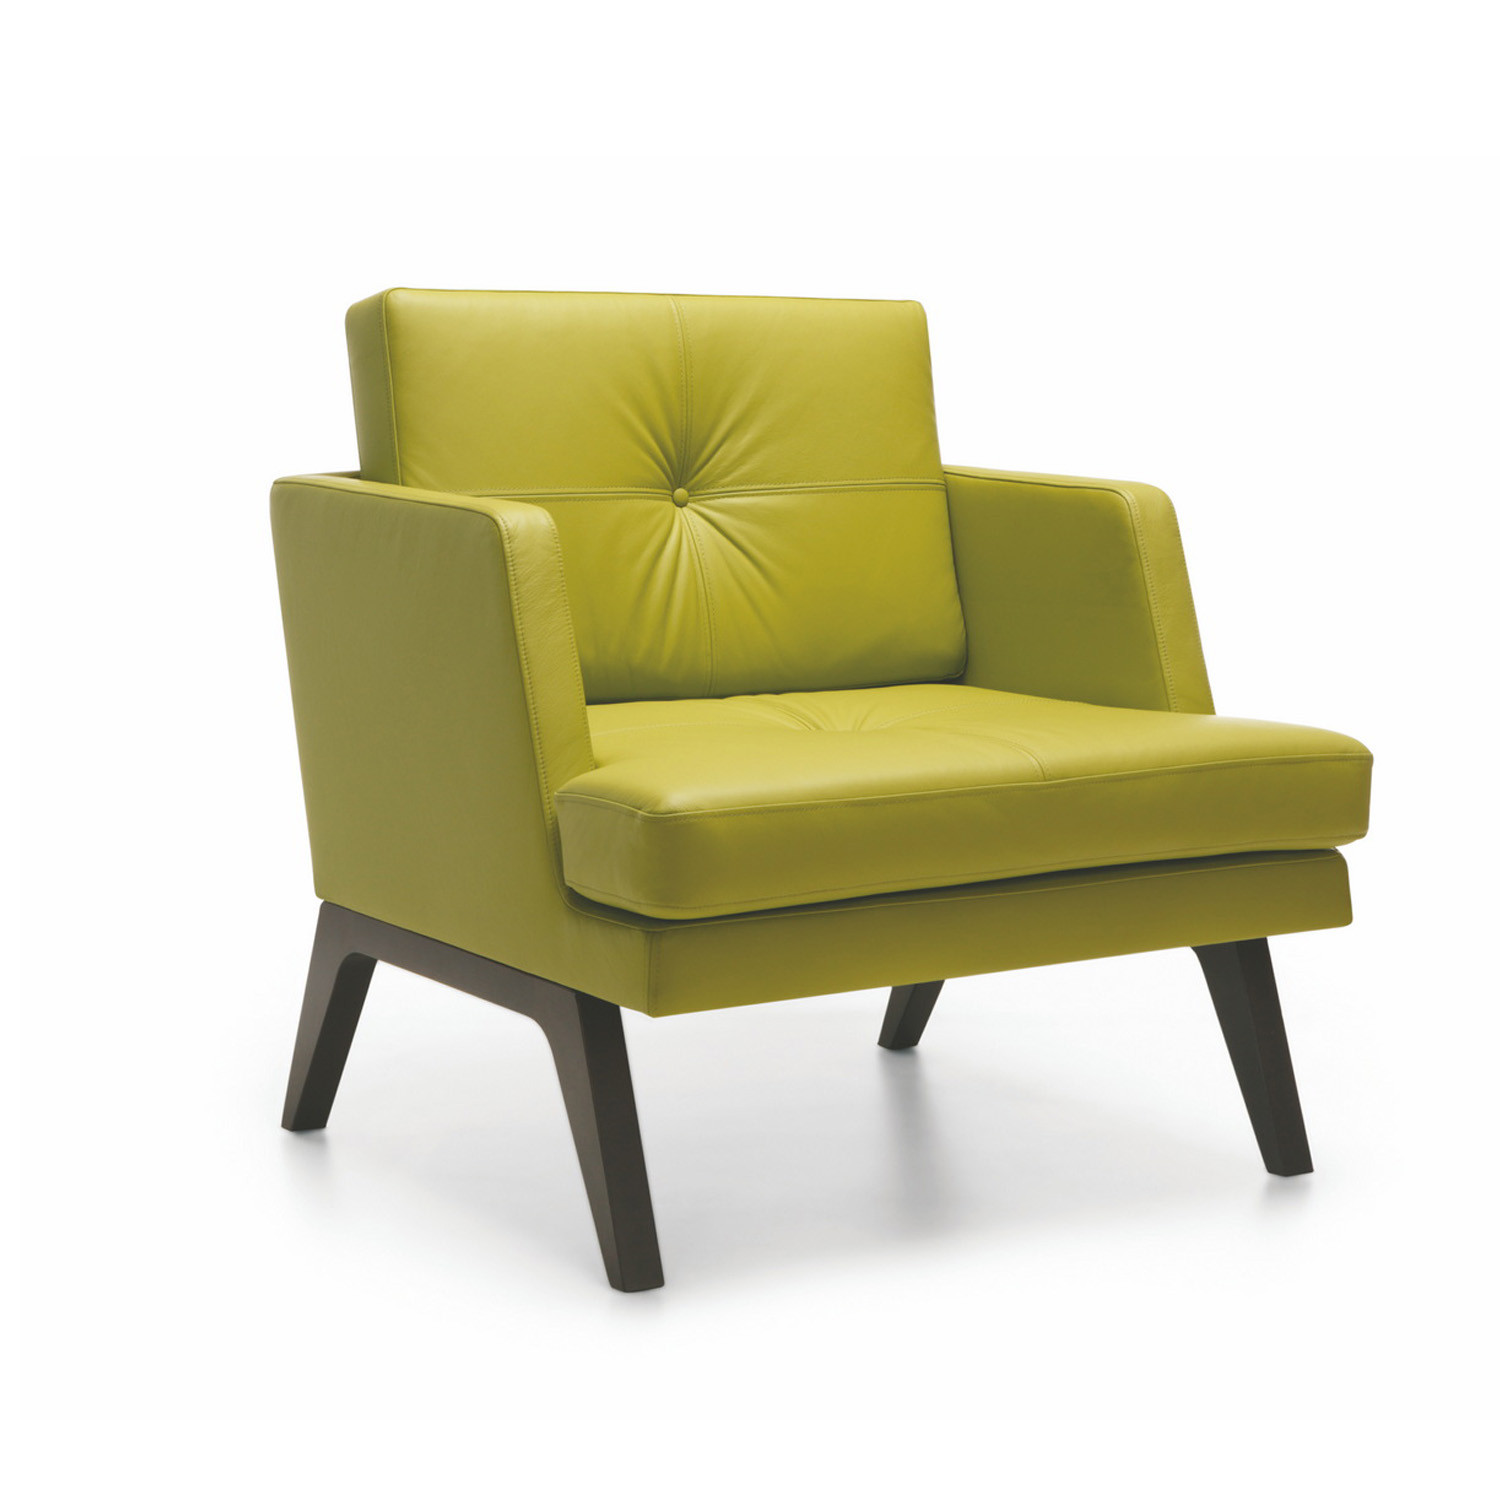 October Seating Armchair